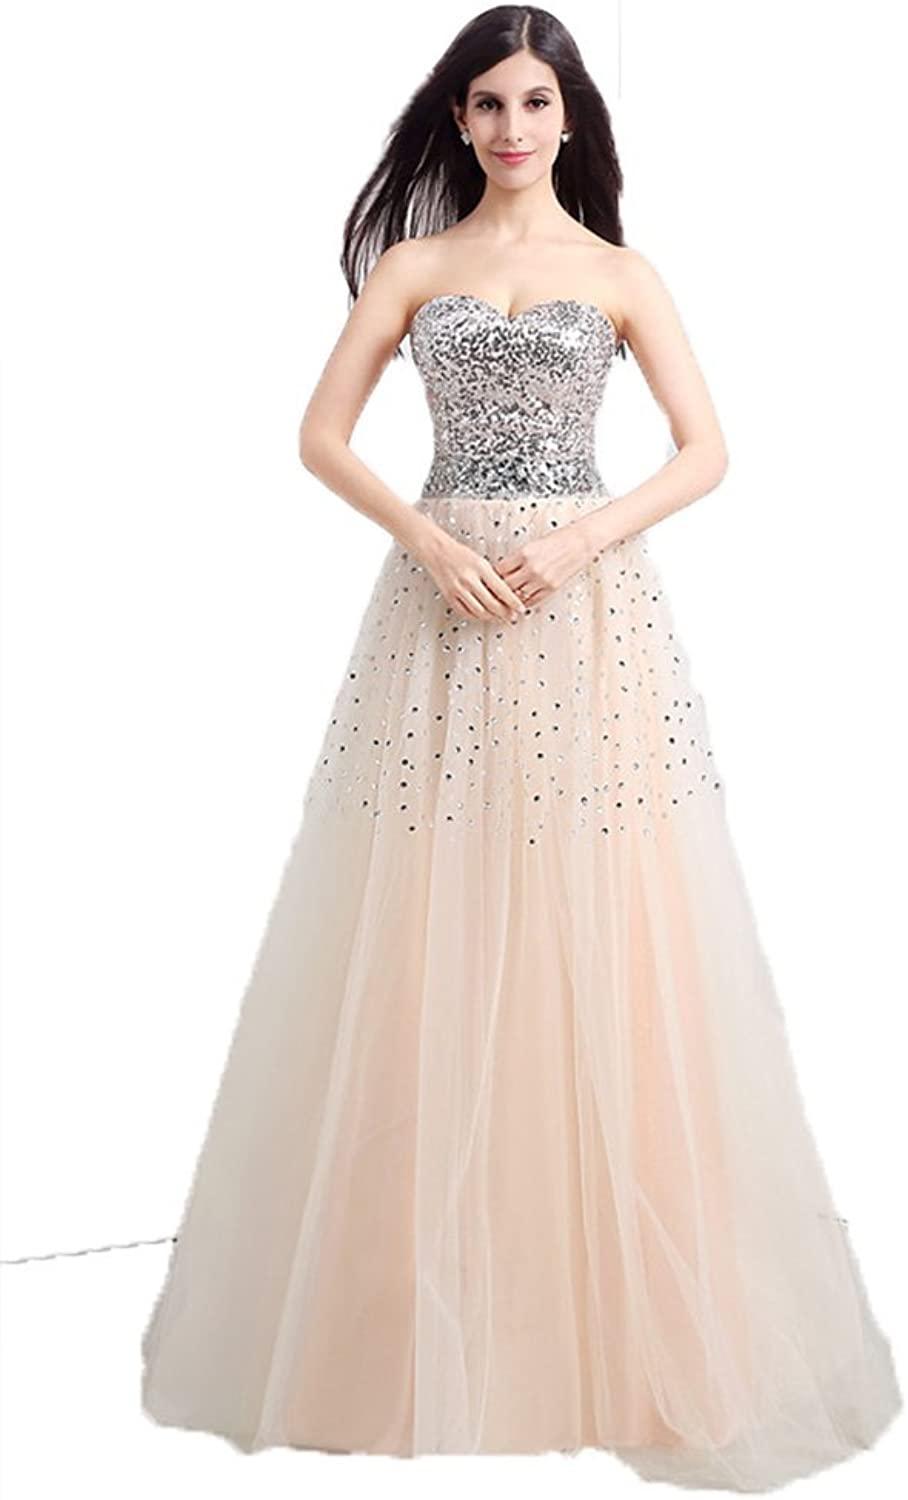 Anna's Bridal Women's Tulle Sequin Prom Dresses 2016 Evening Formal Gowns